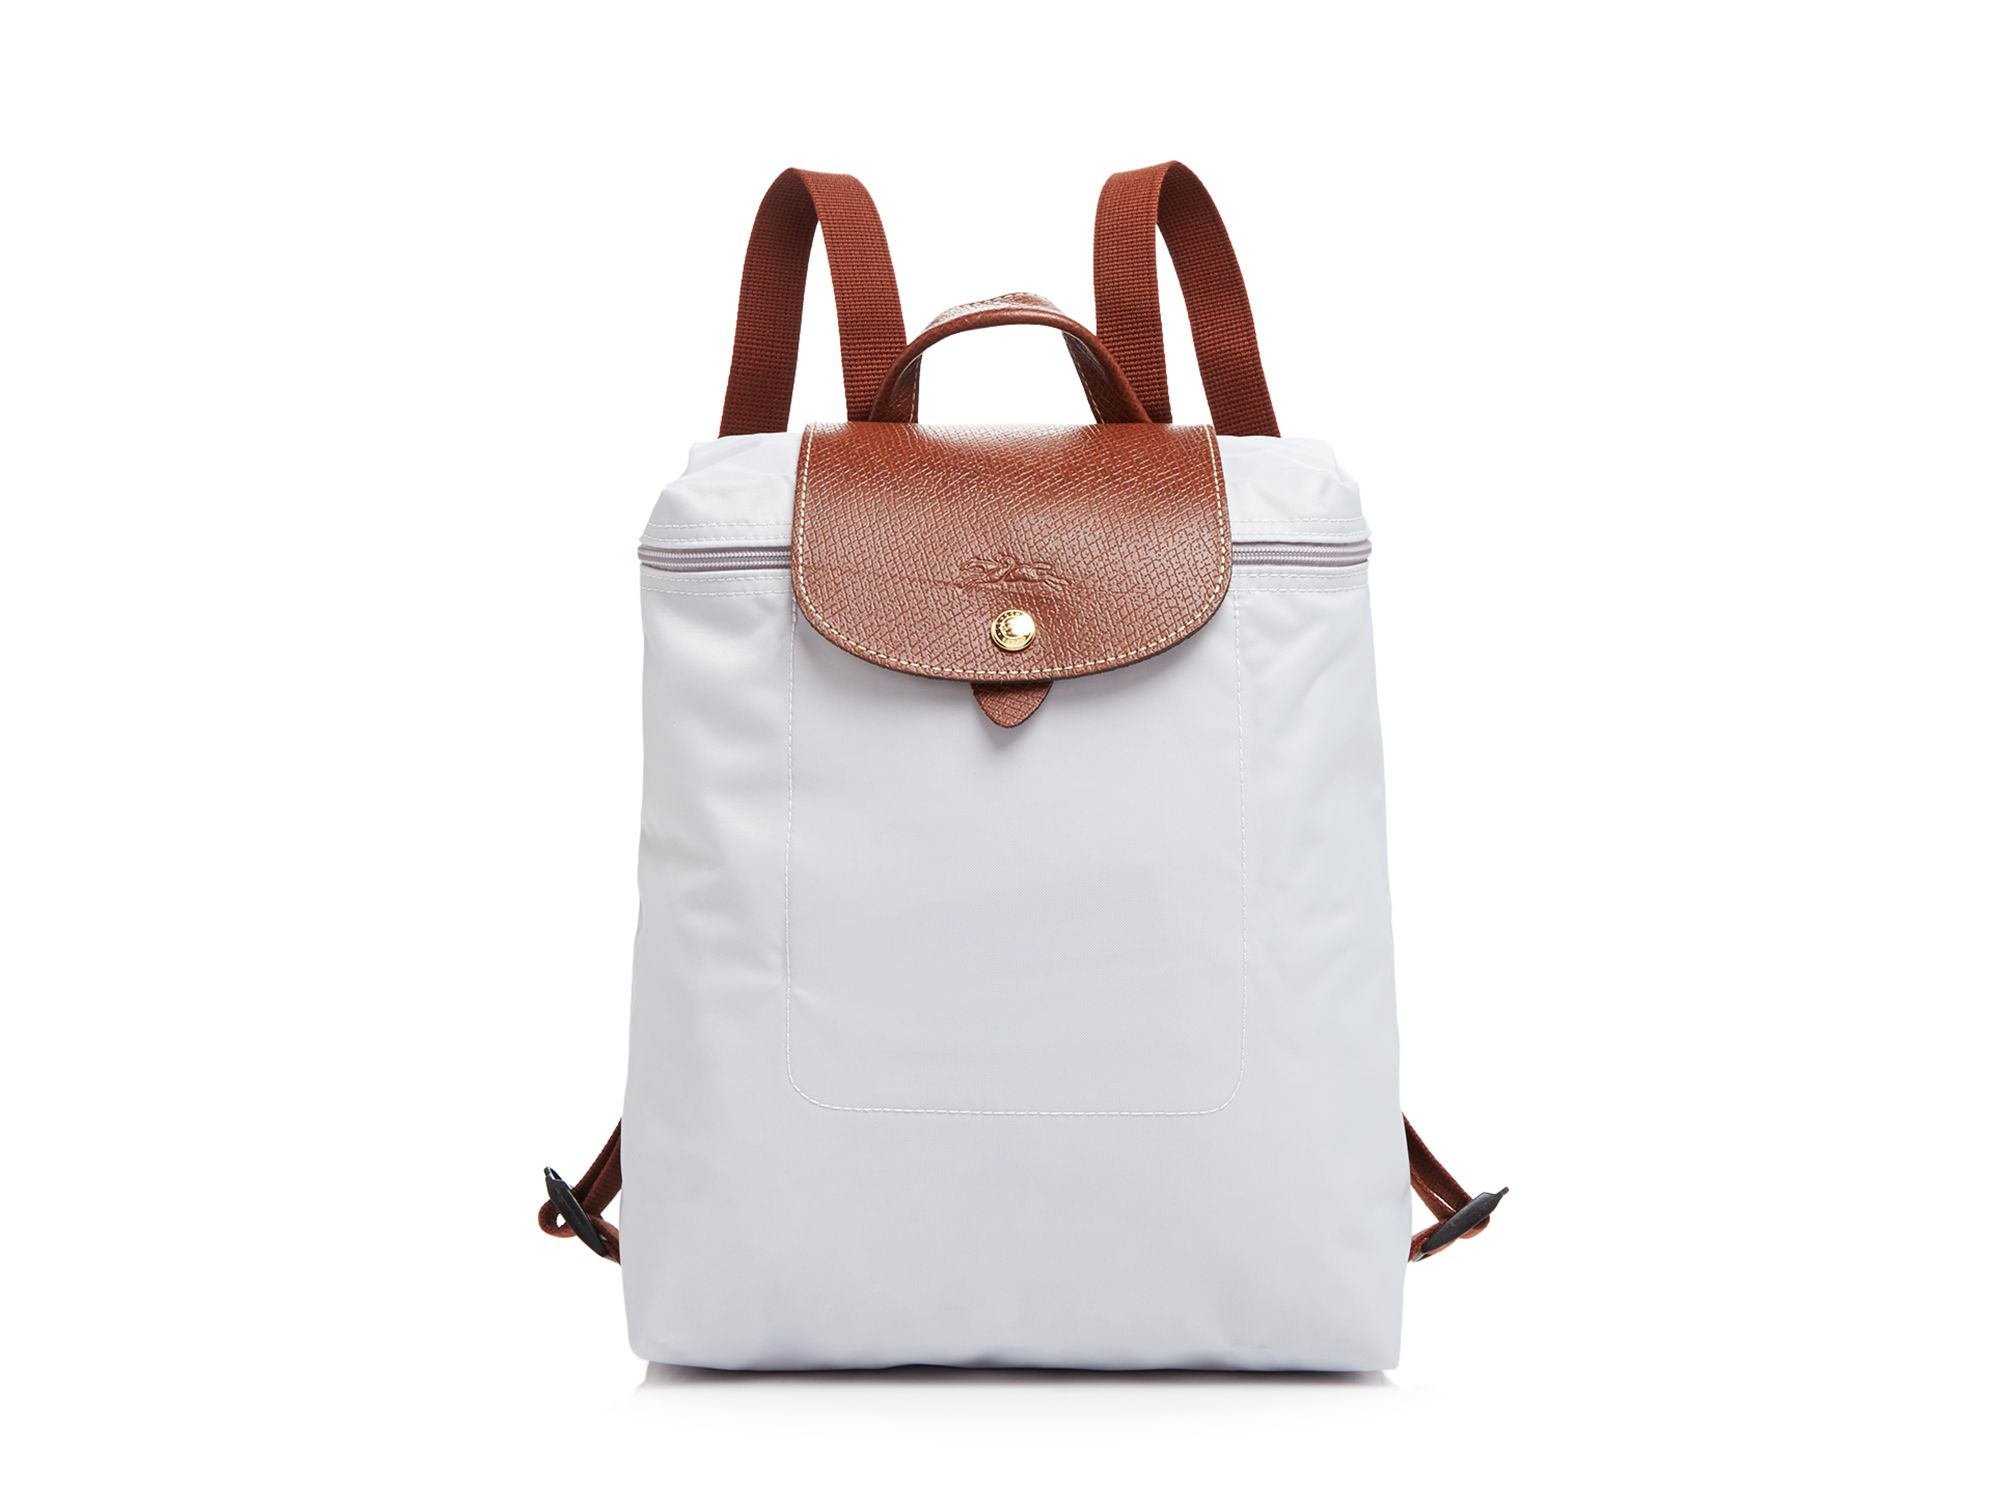 Lyst - Longchamp Le Pliage Backpack in White 4af9aab337e5c